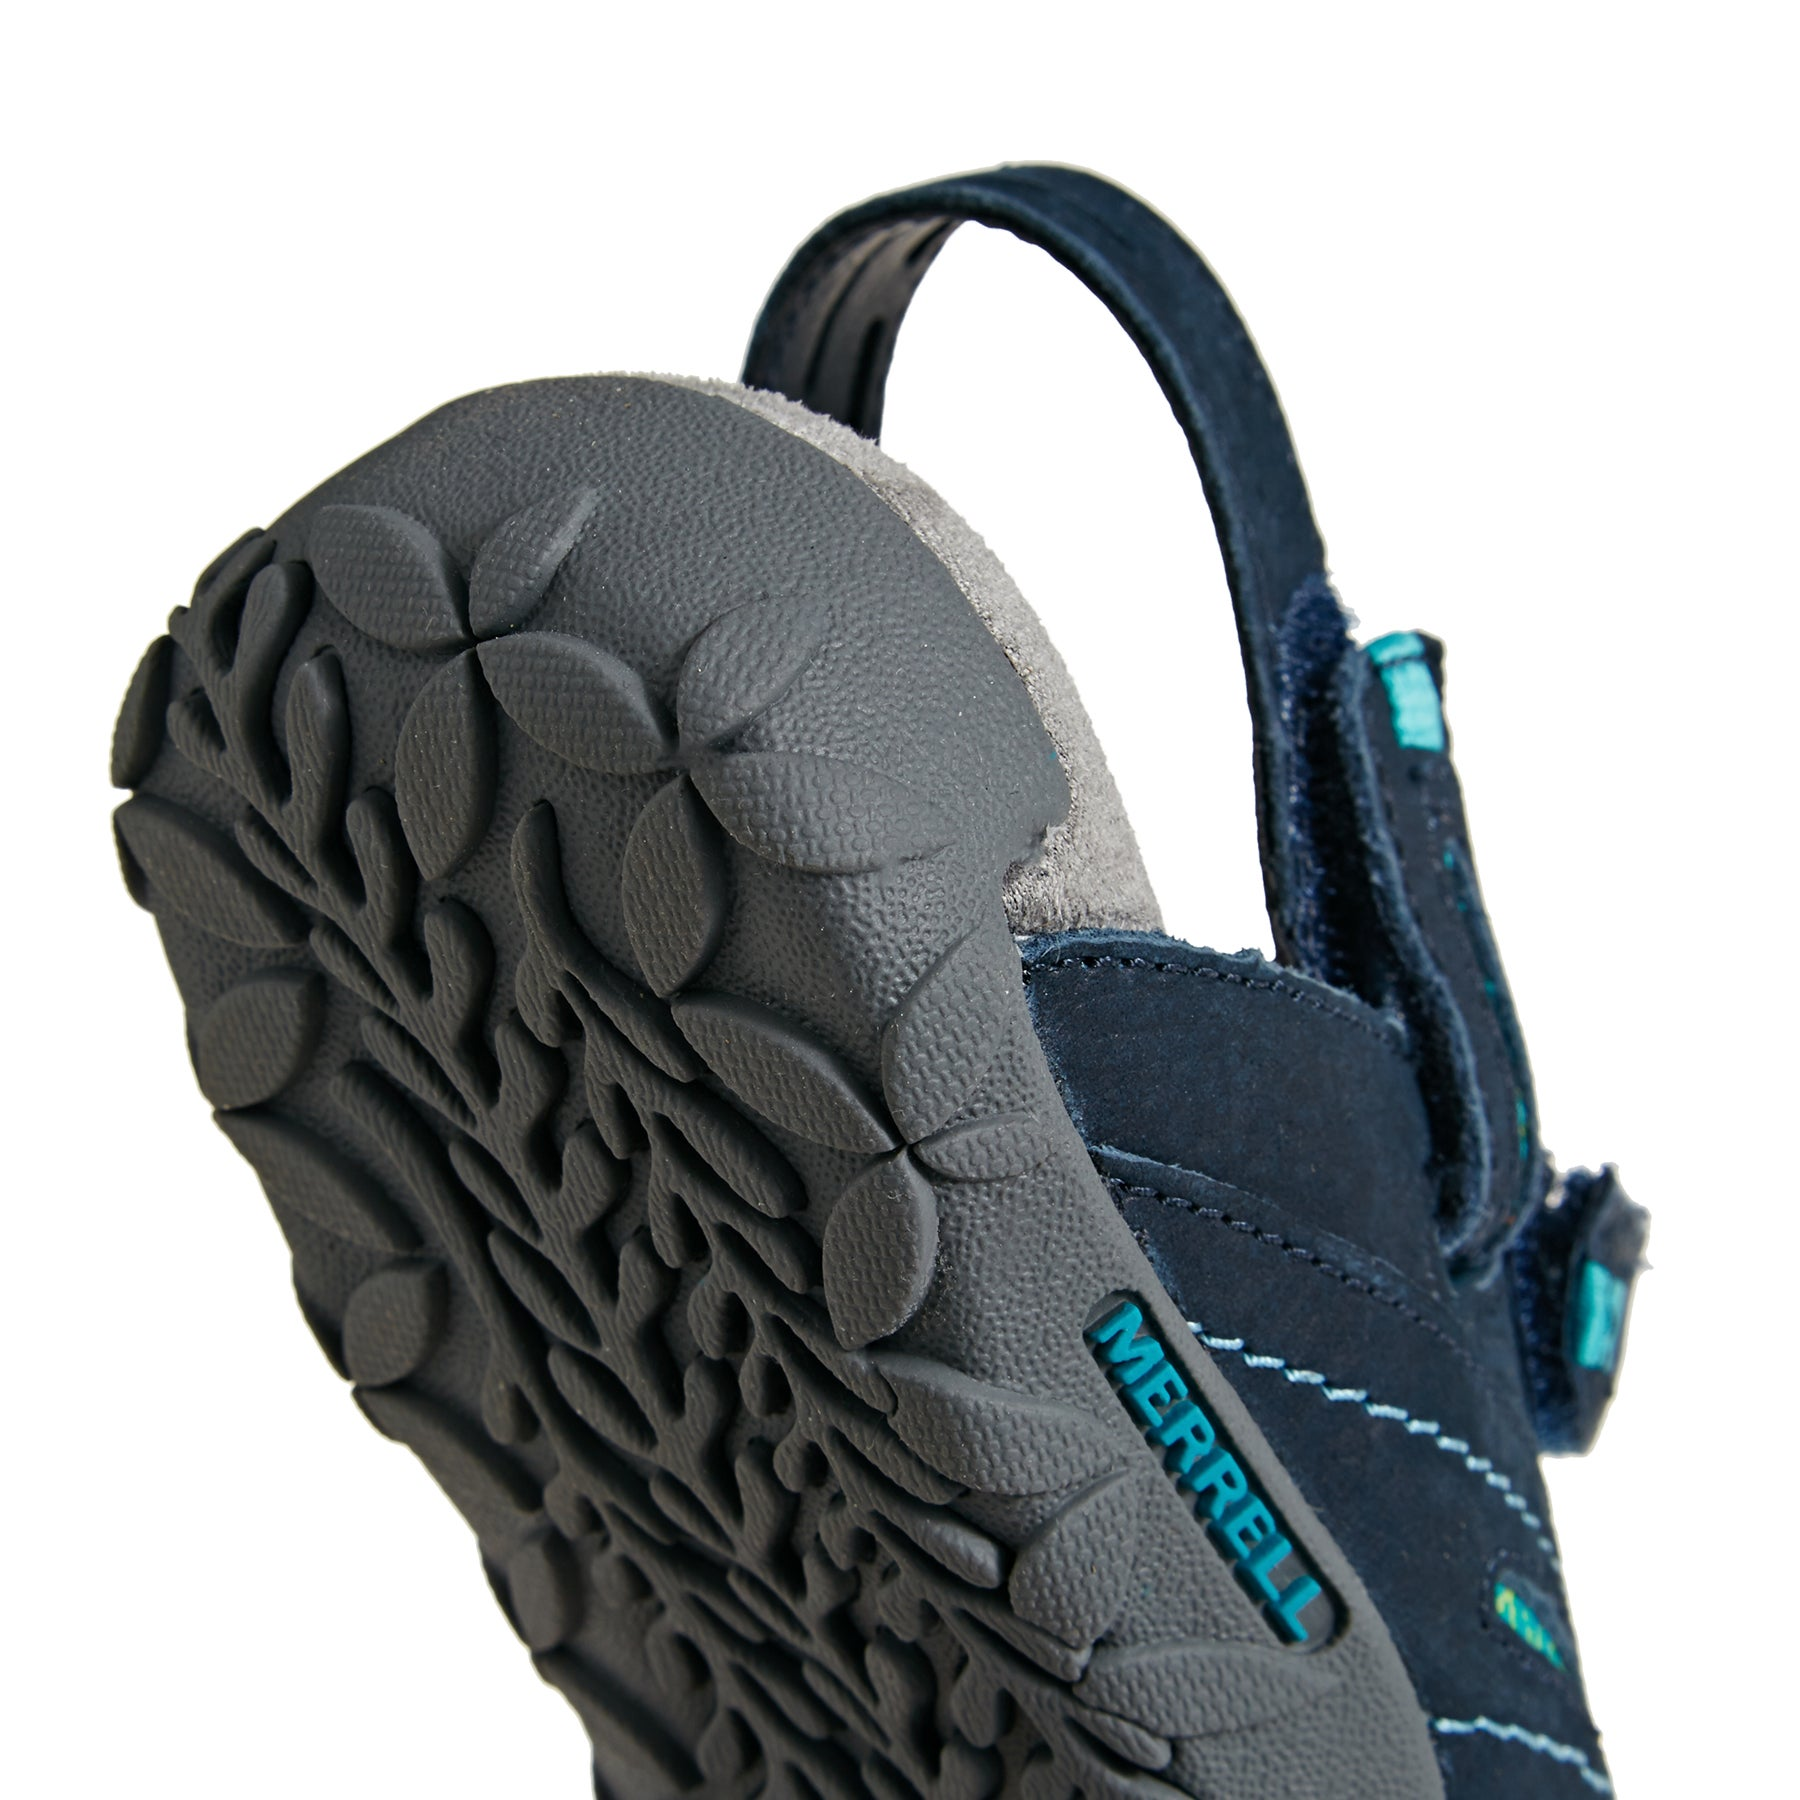 Ii Sandalias Terran From Convertible Mujer Surfdome Merrell Available rdxeCBo